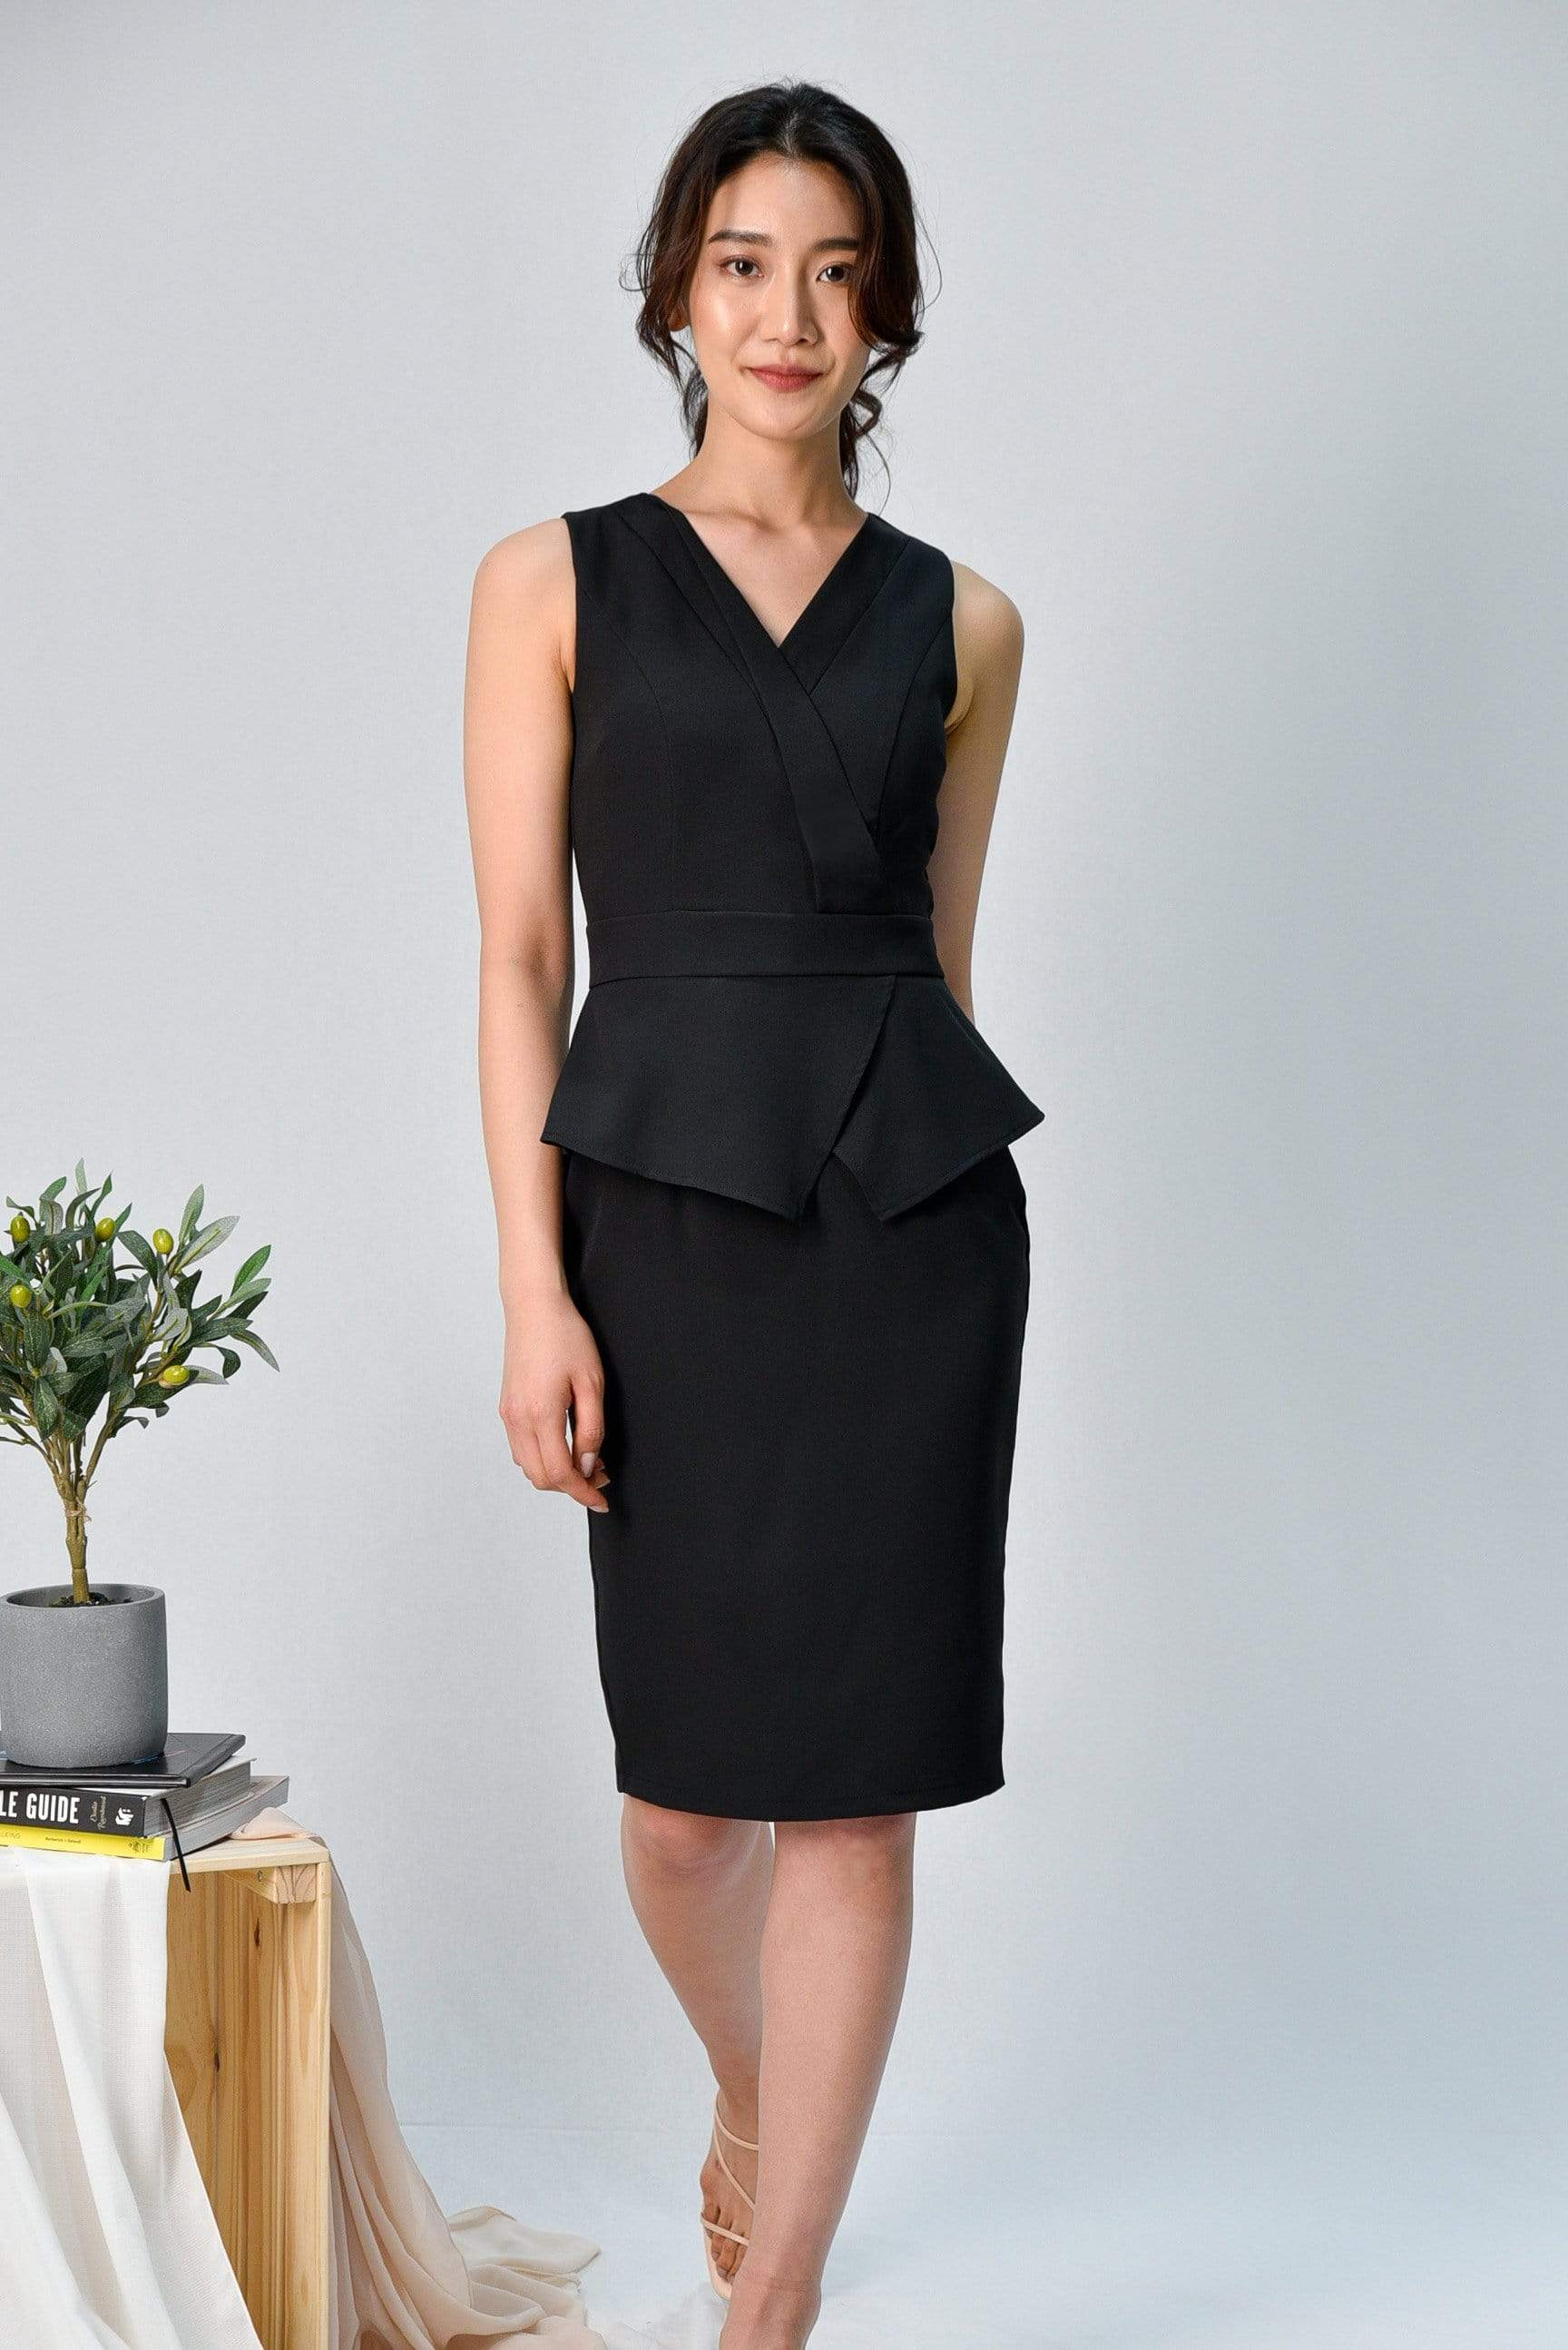 FARAH BLACK PEPLUM PENCIL DRESS